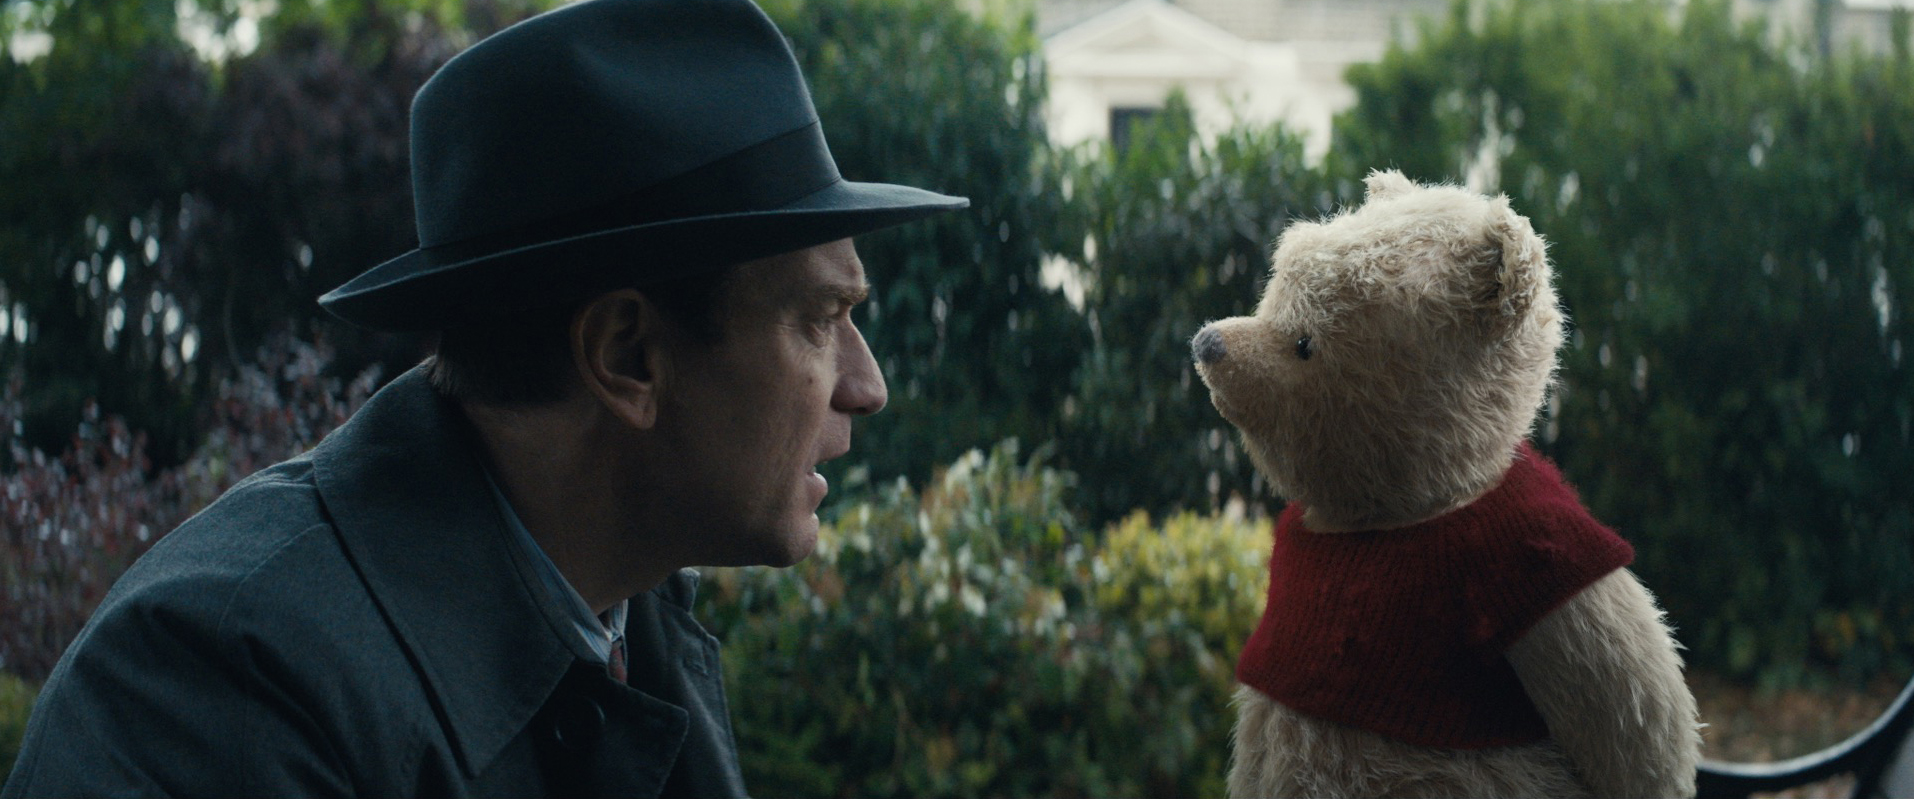 Ewan McGregor meets Winnie The Pooh in first trailer for Christopher Robin